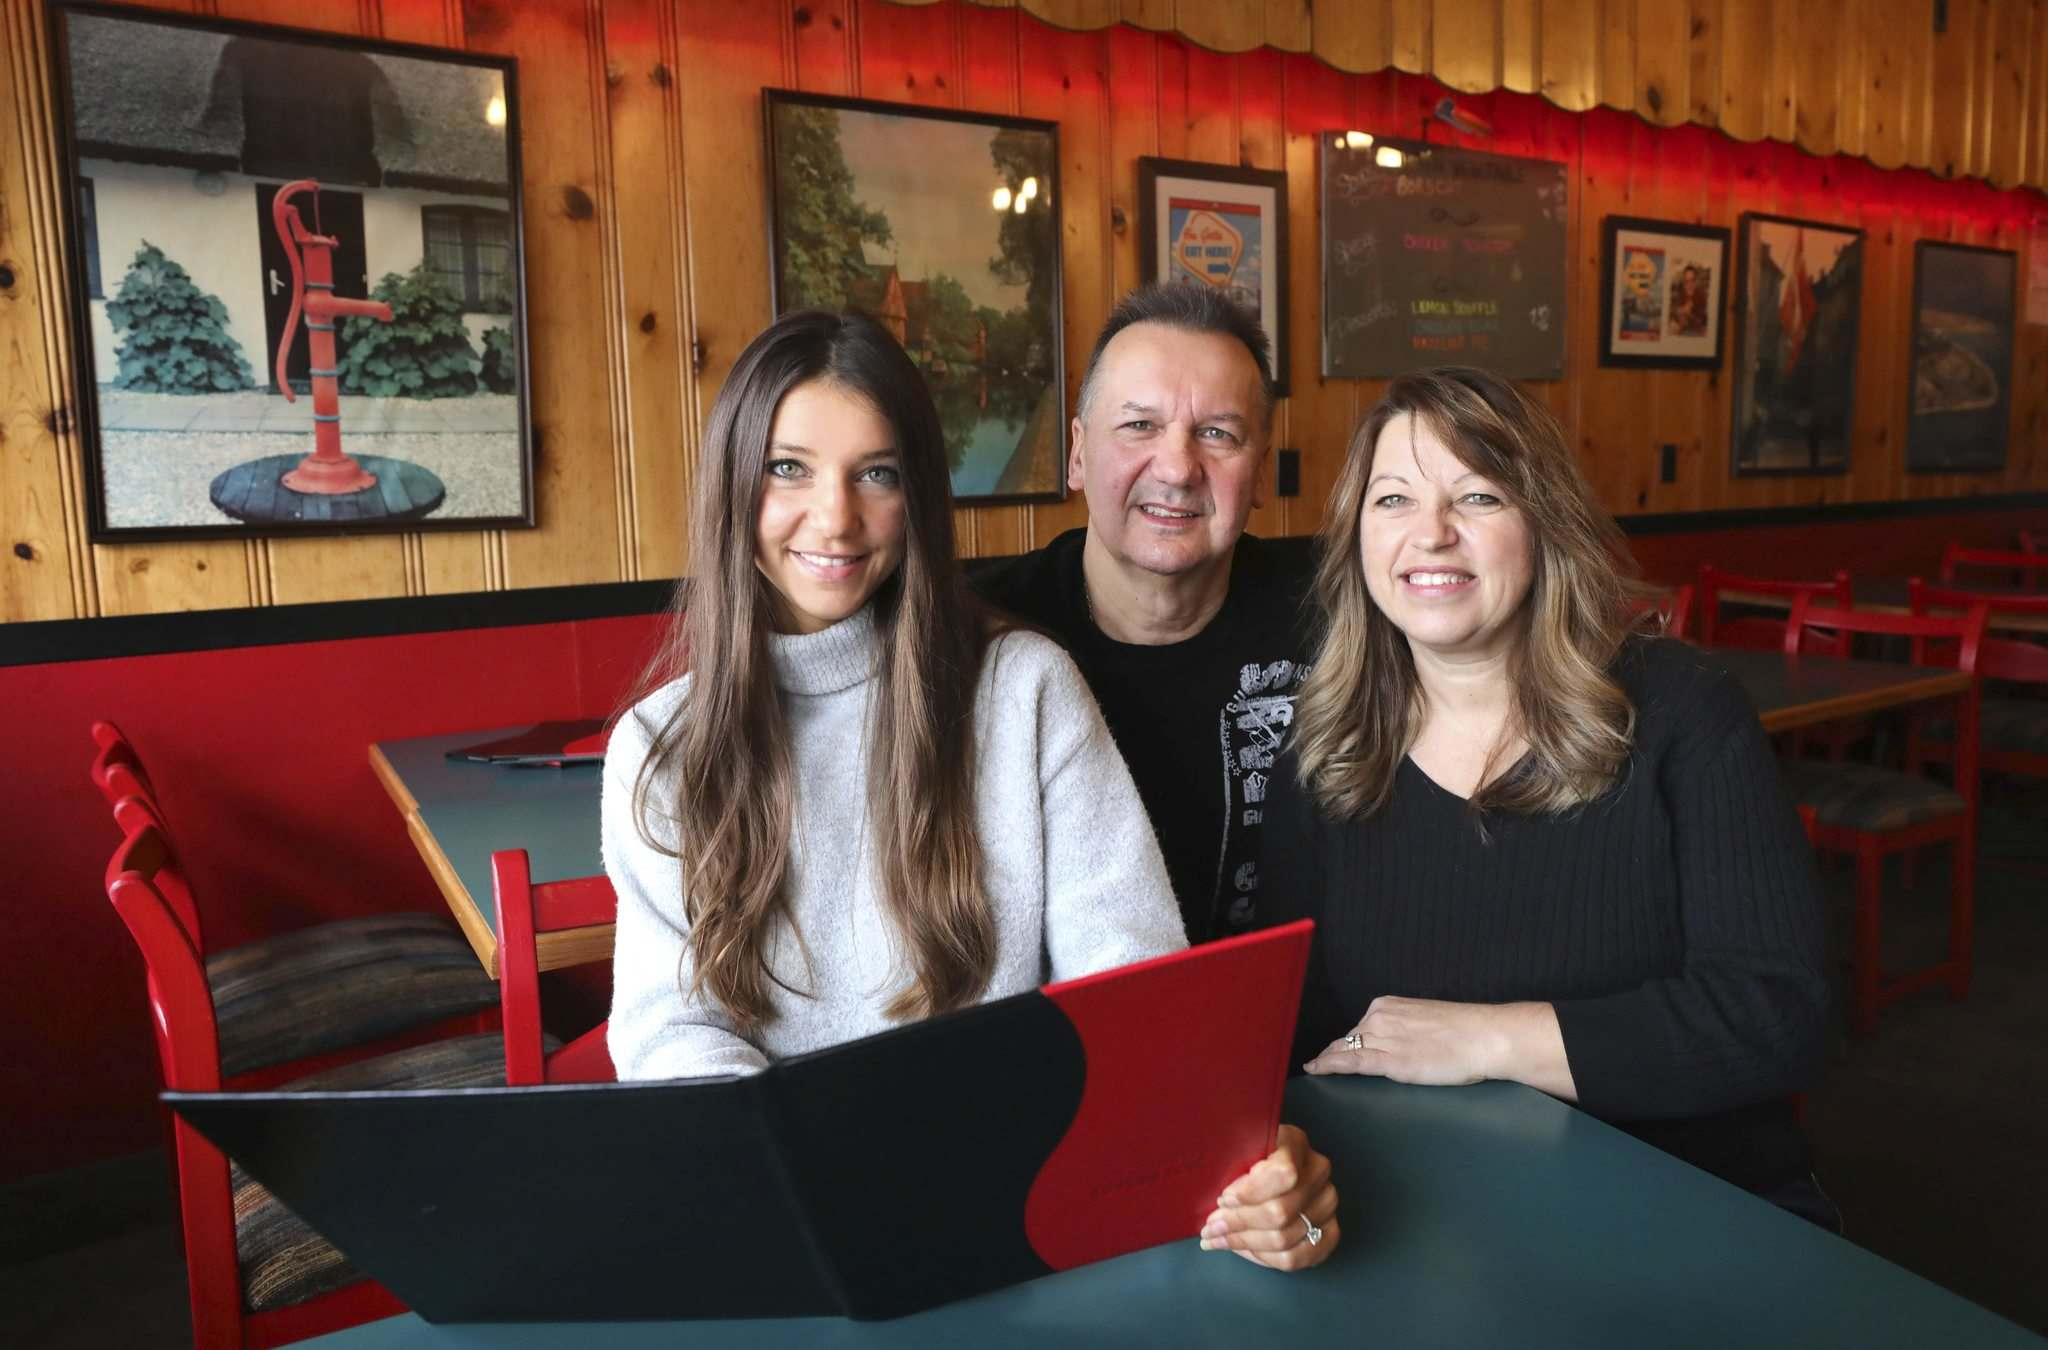 Paul and Pamela Vocadlo bought Bistro Dansk as newlyweds in 1988. Recently, daughter Carley, 25, has put aside her real estate career to help out in the popular eatery.</p>